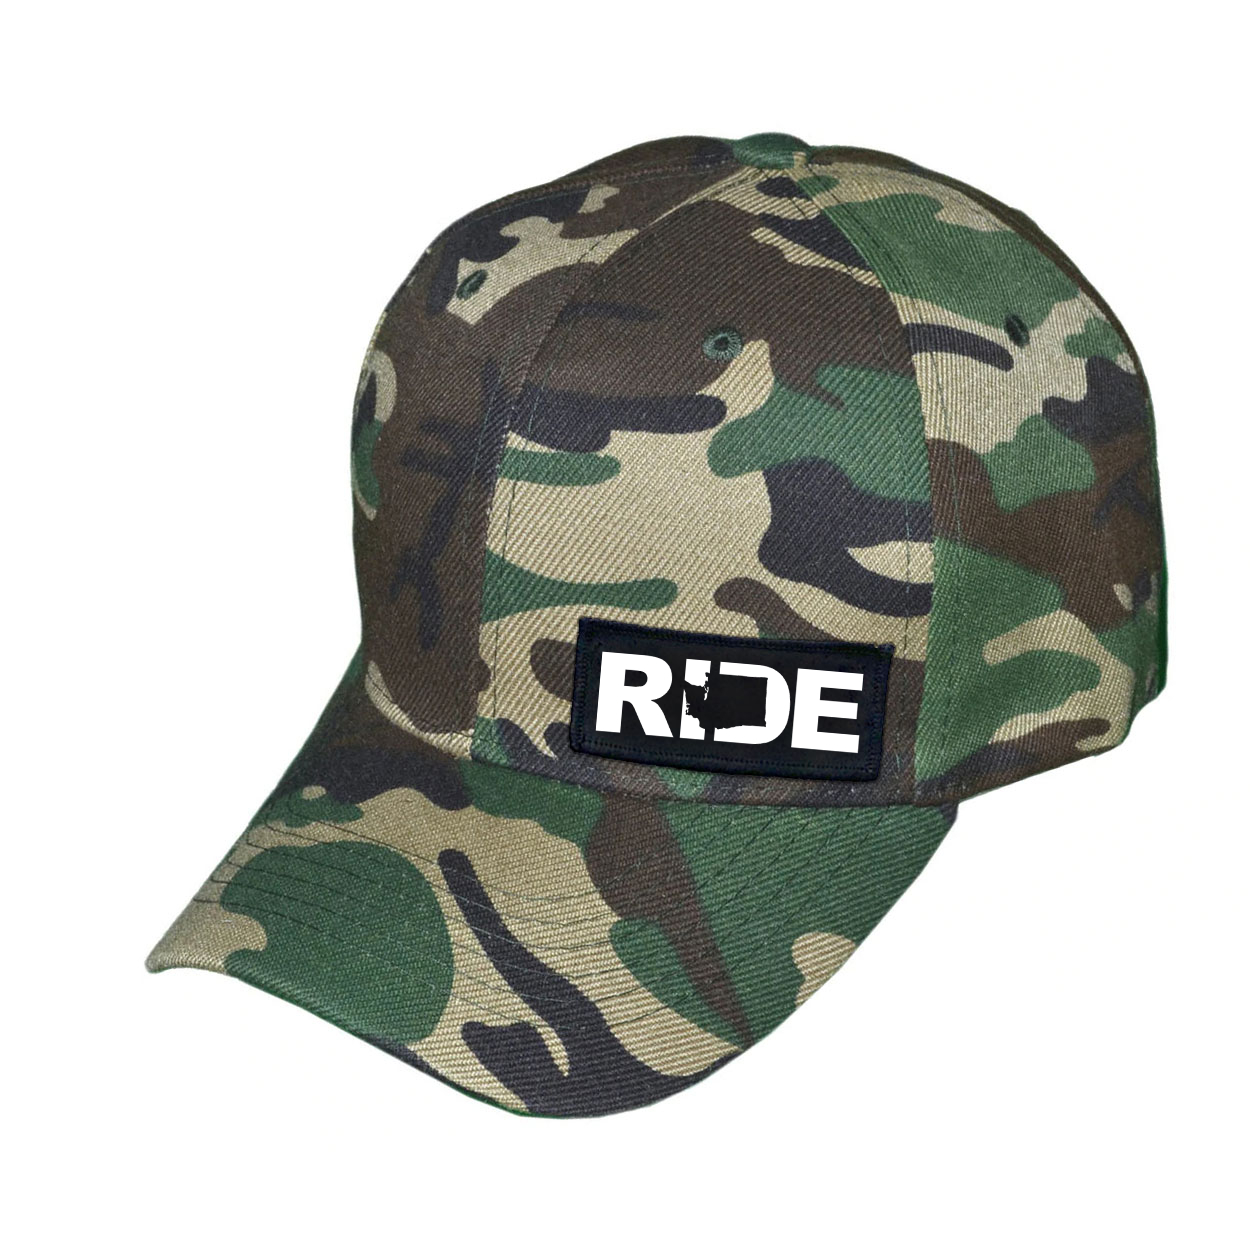 Ride Washington Night Out Woven Patch Hat Camo (White Logo)